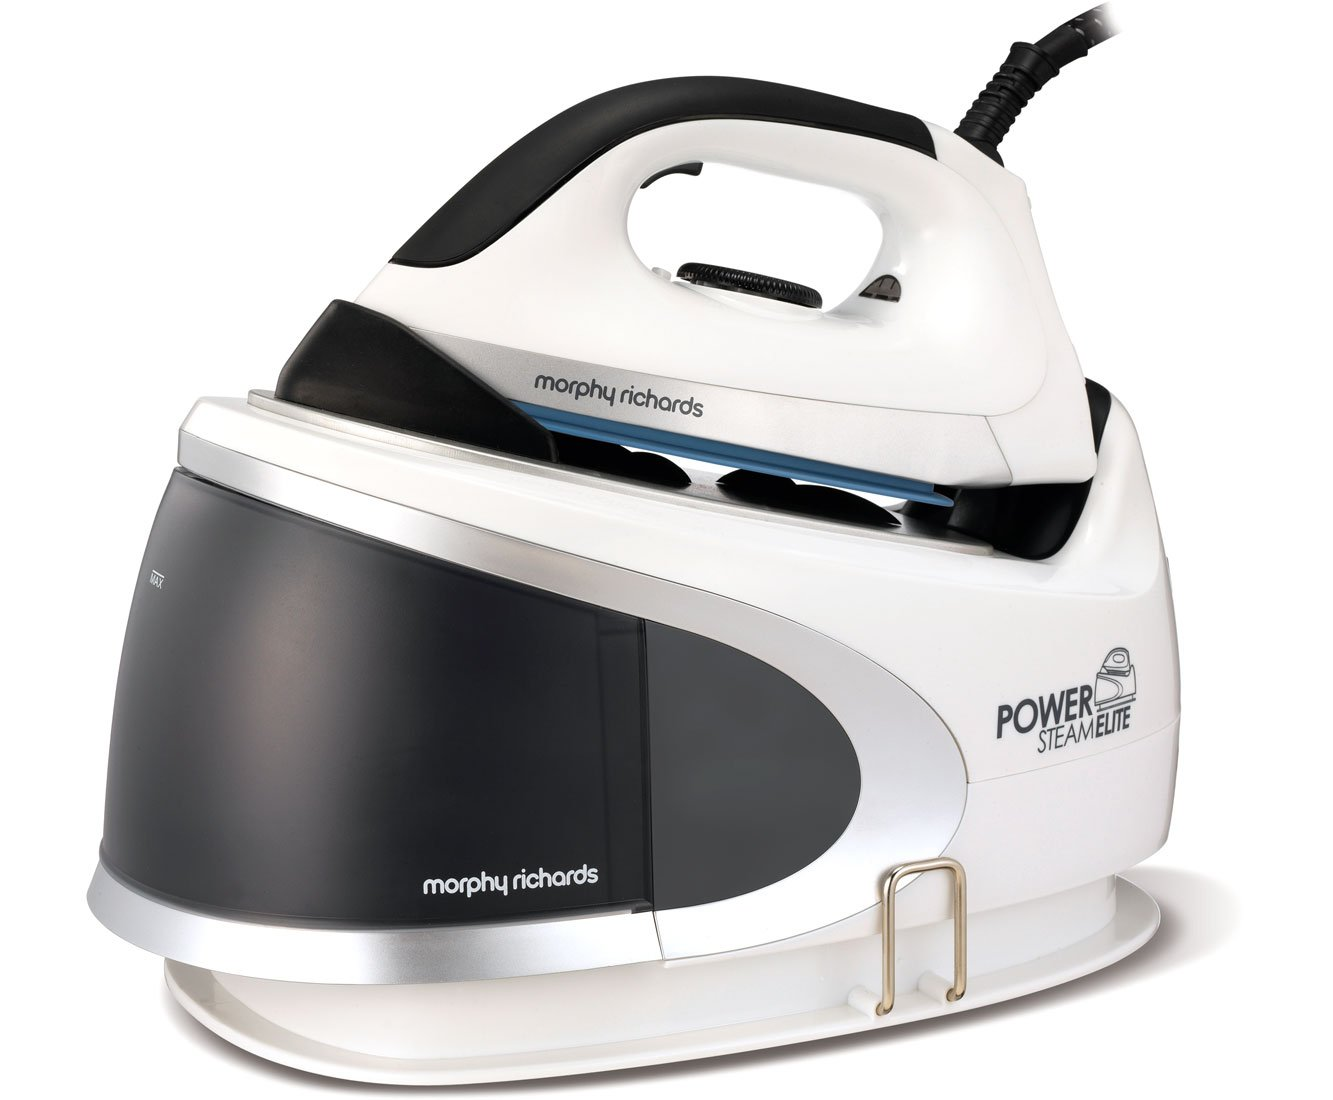 Morphy Richards 330014 Pressurised Steam Generator 6.5 Bar 200g Steam Ionic Steam Generator Iron